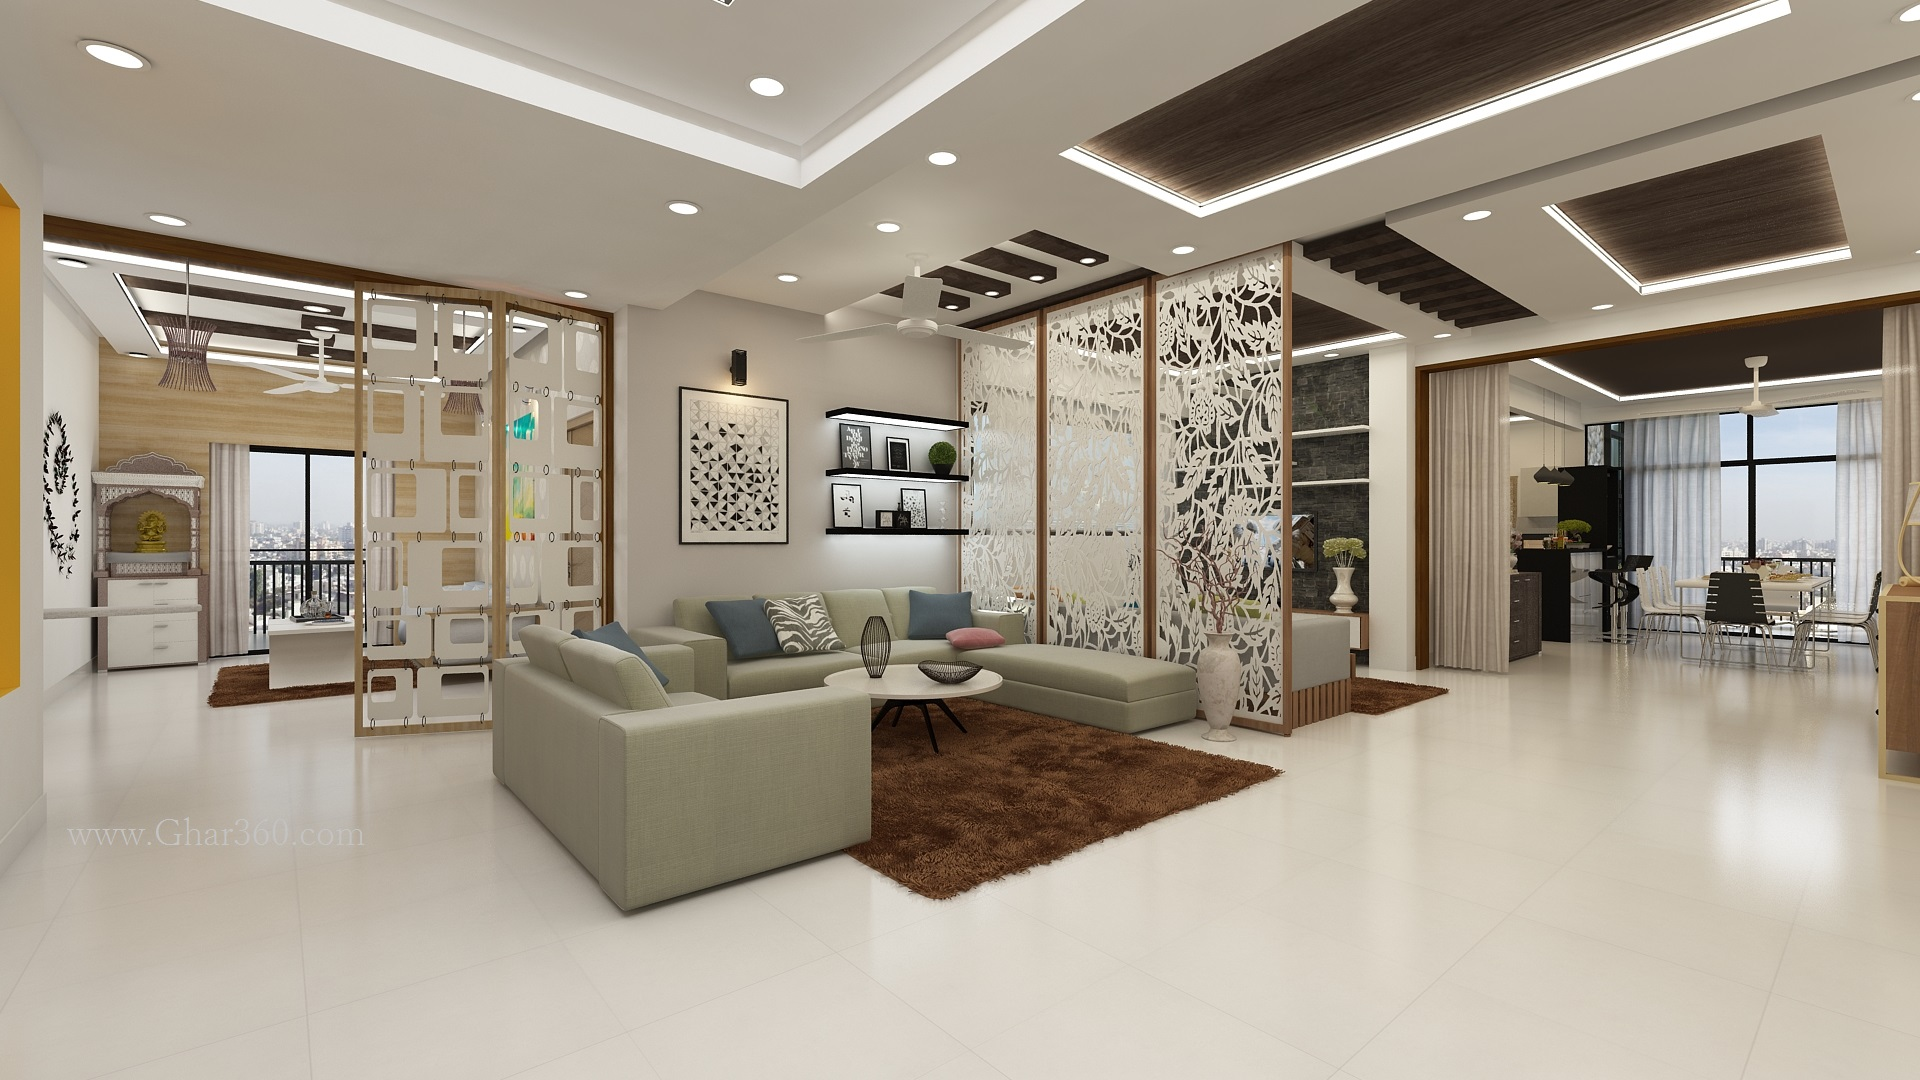 Luxury interior design by ghar360 best interior design firm in bangalore Best home furniture in bangalore